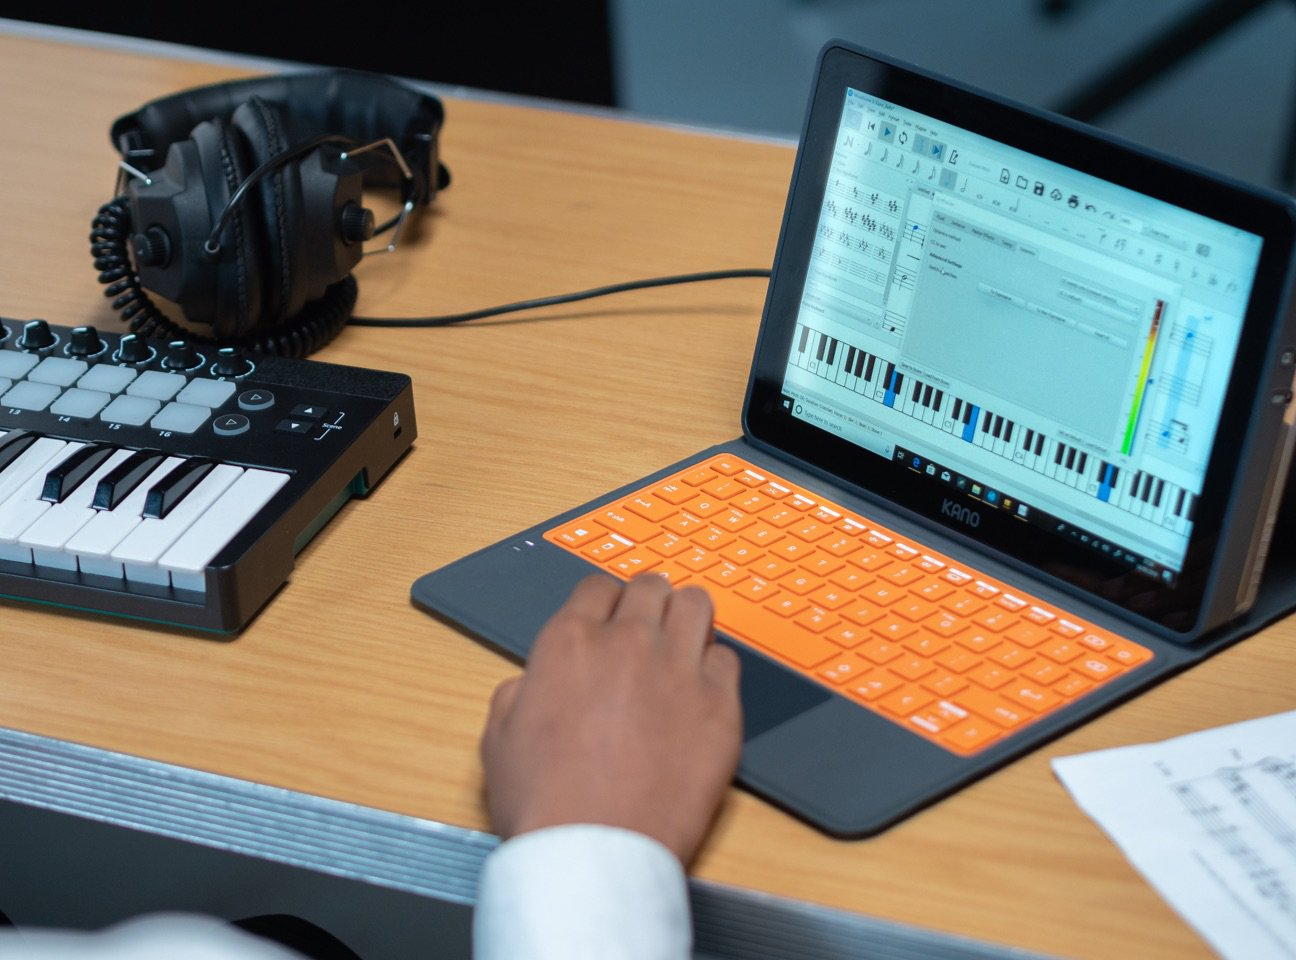 Make art, music, and games with the Kano PC